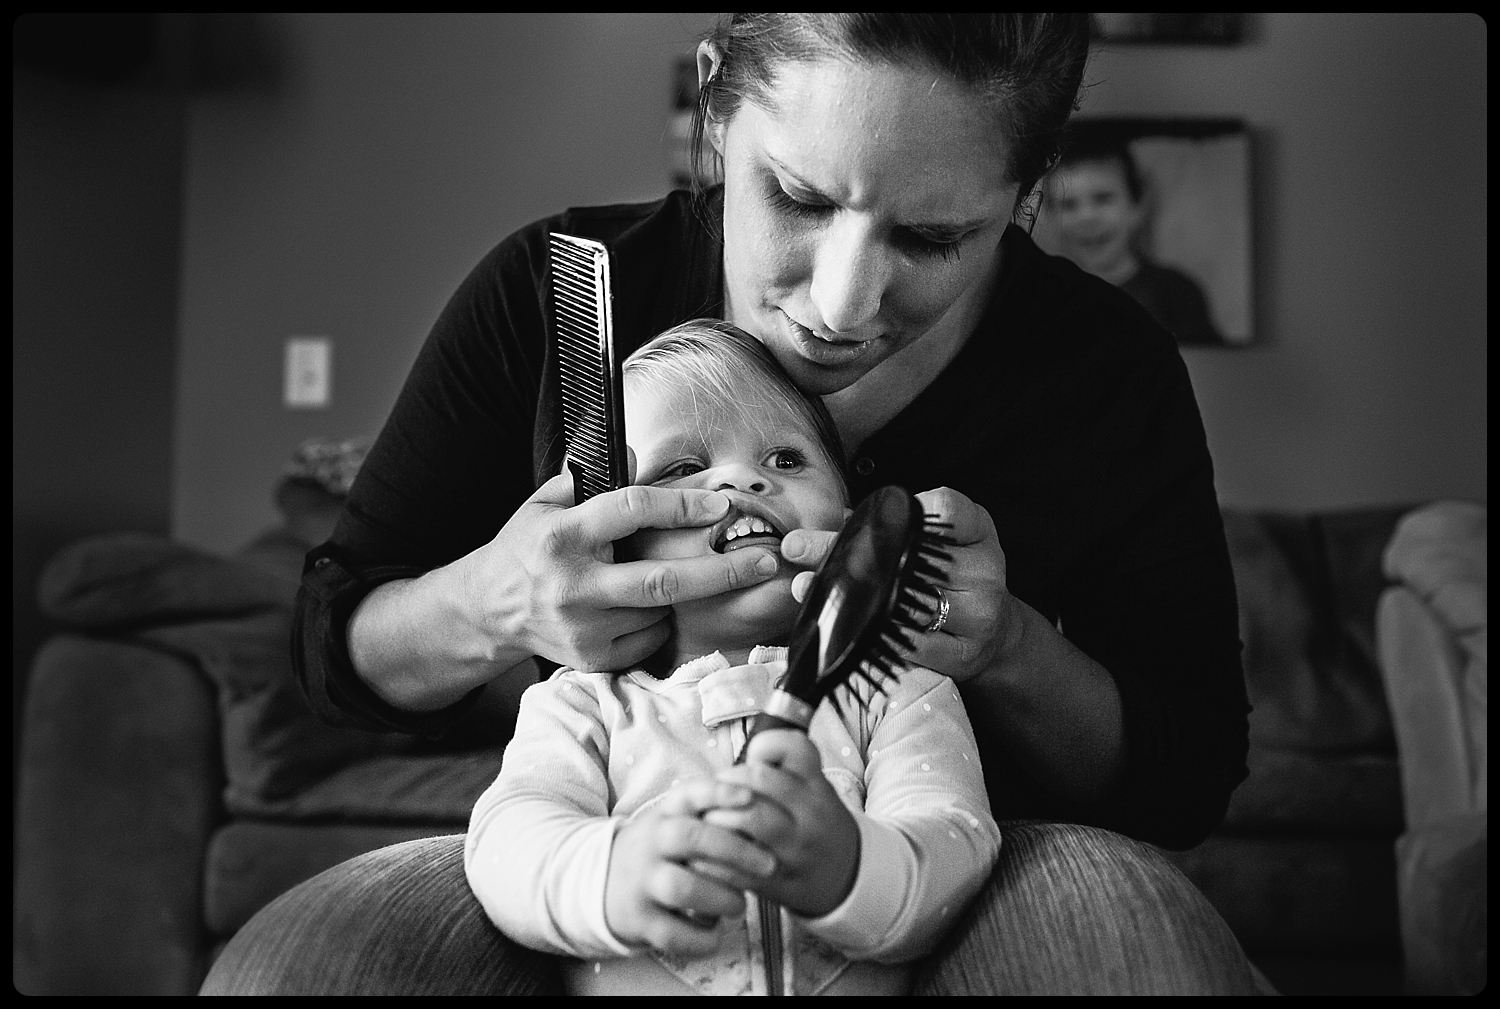 Mom pulls hair out of toddler's mouth after toddler puts brush in mouth.